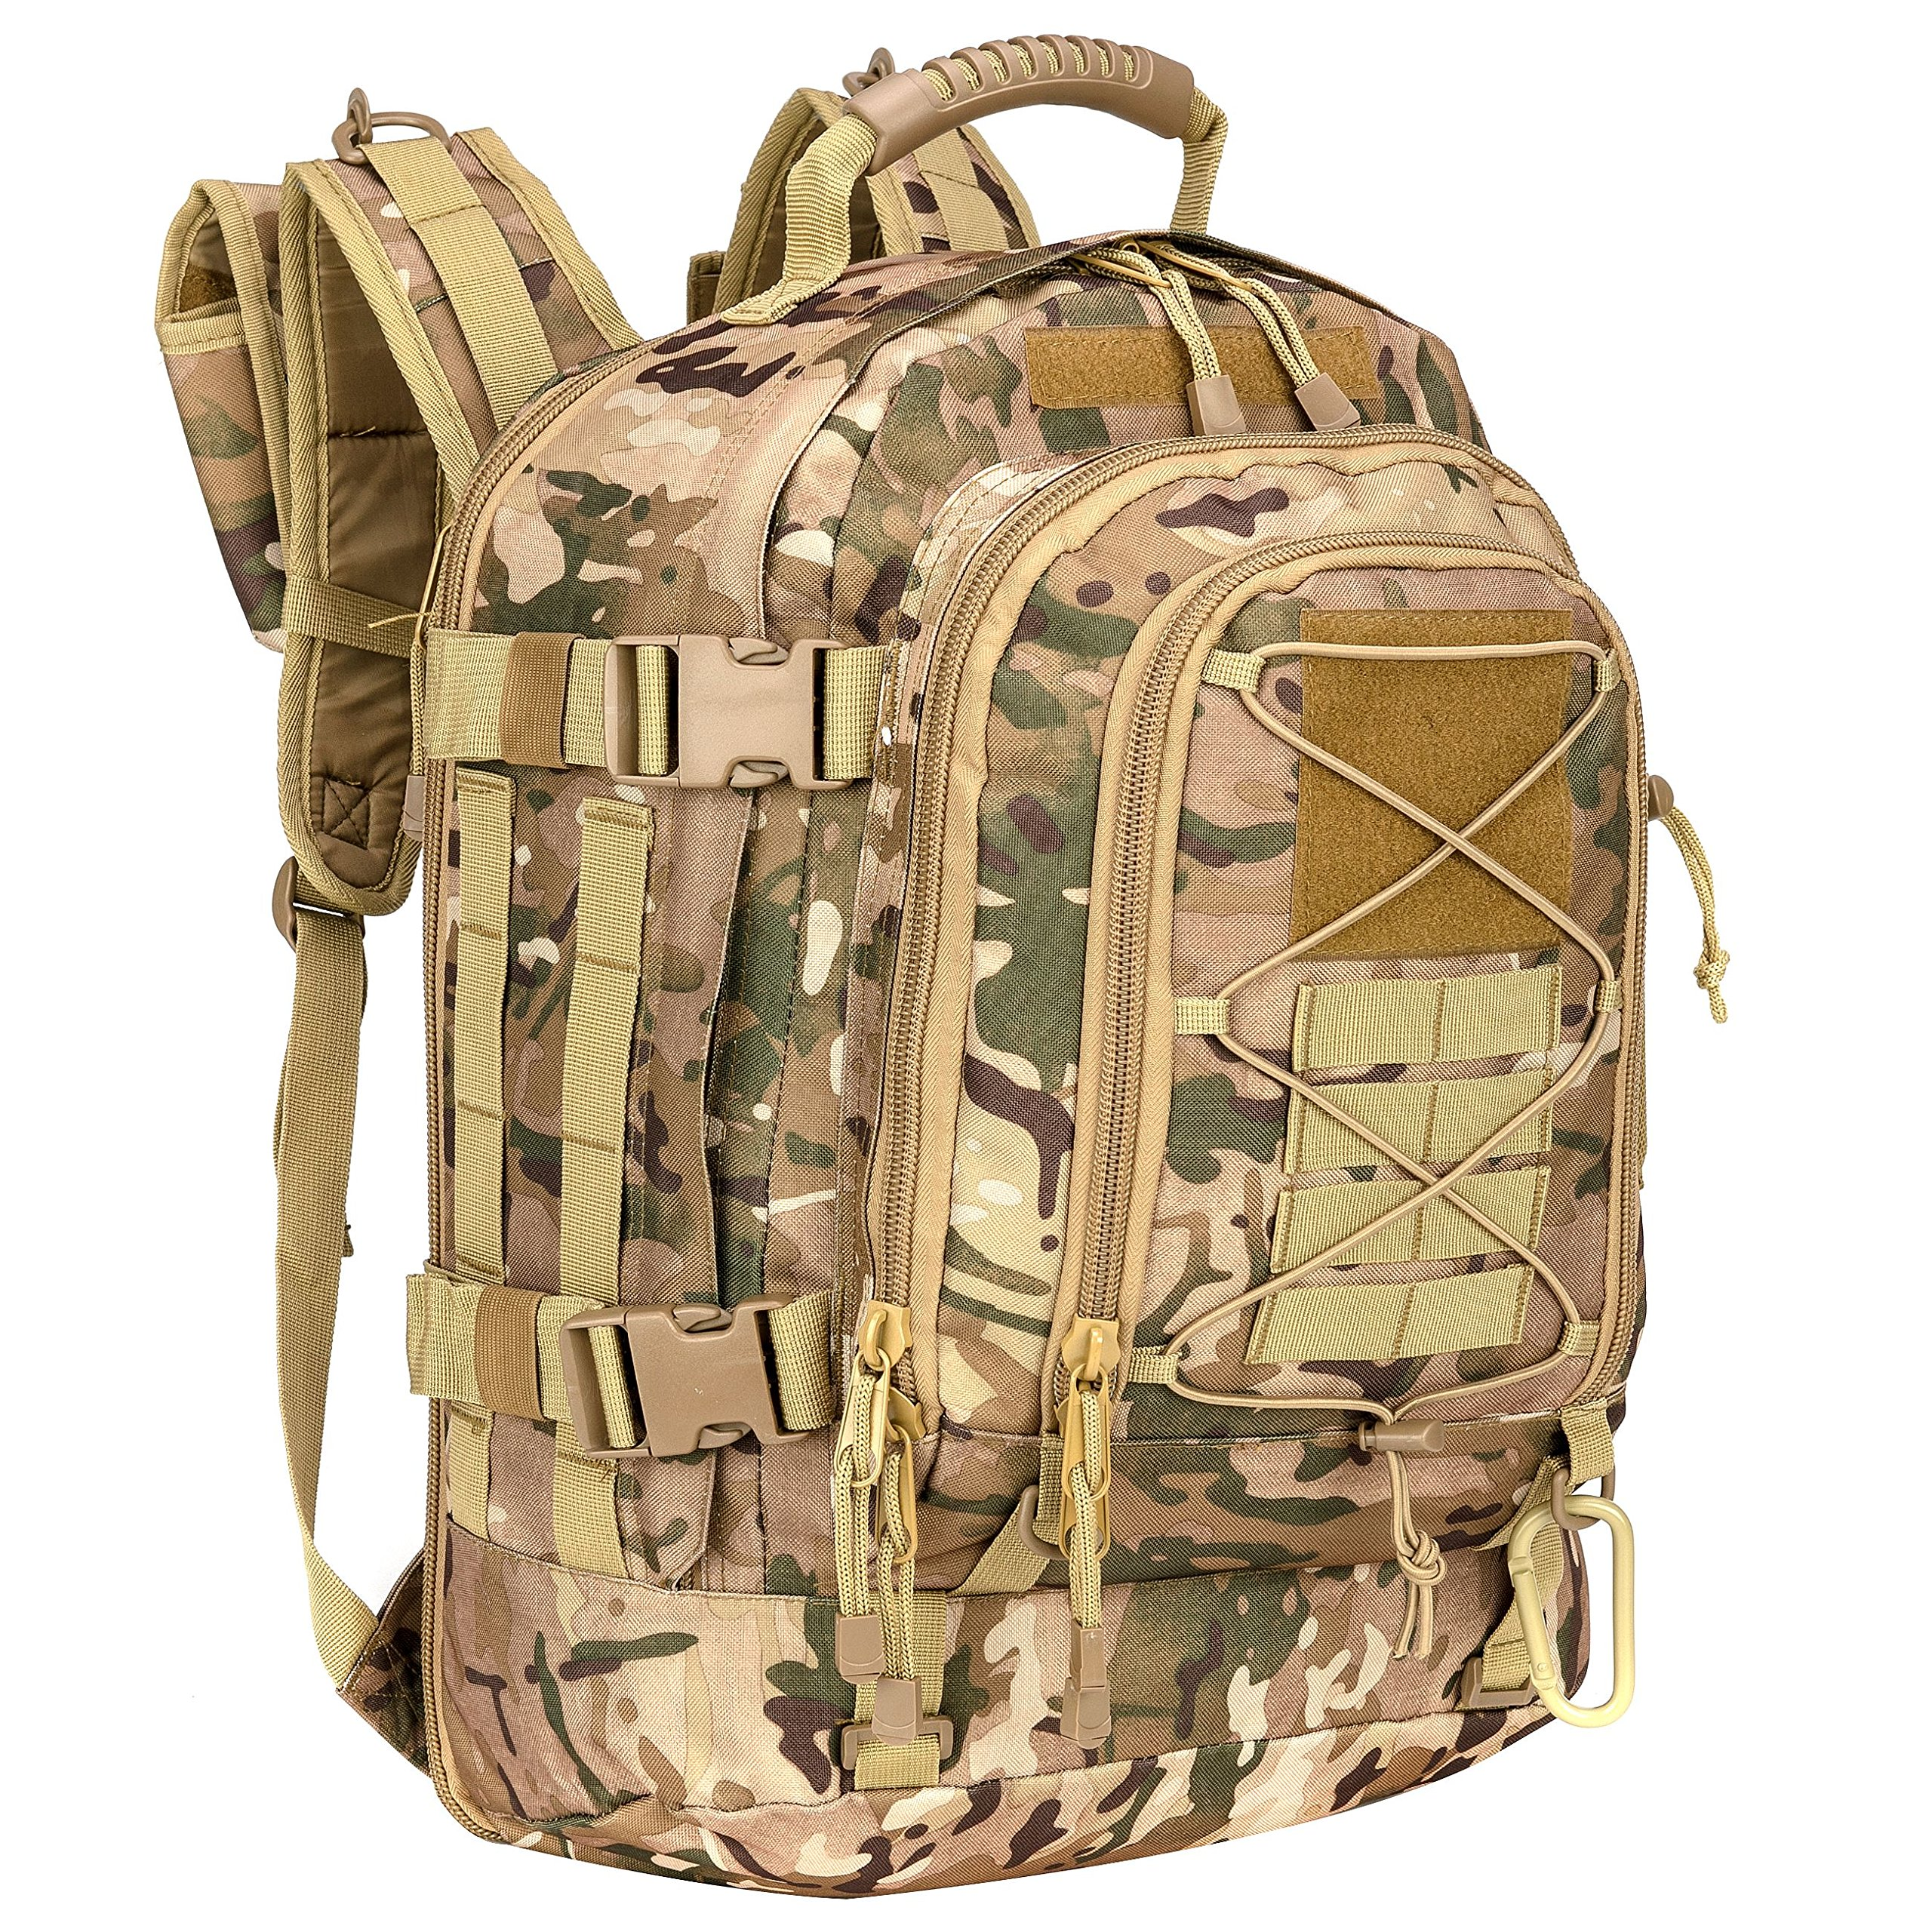 WolfWarriorX Military Tactical Assault Backpack Hiking Bag Extreme Water Resistant 3- Day Rucksack Molle Bug Out Bag for Traveling, Camping, Trekking & Hiking